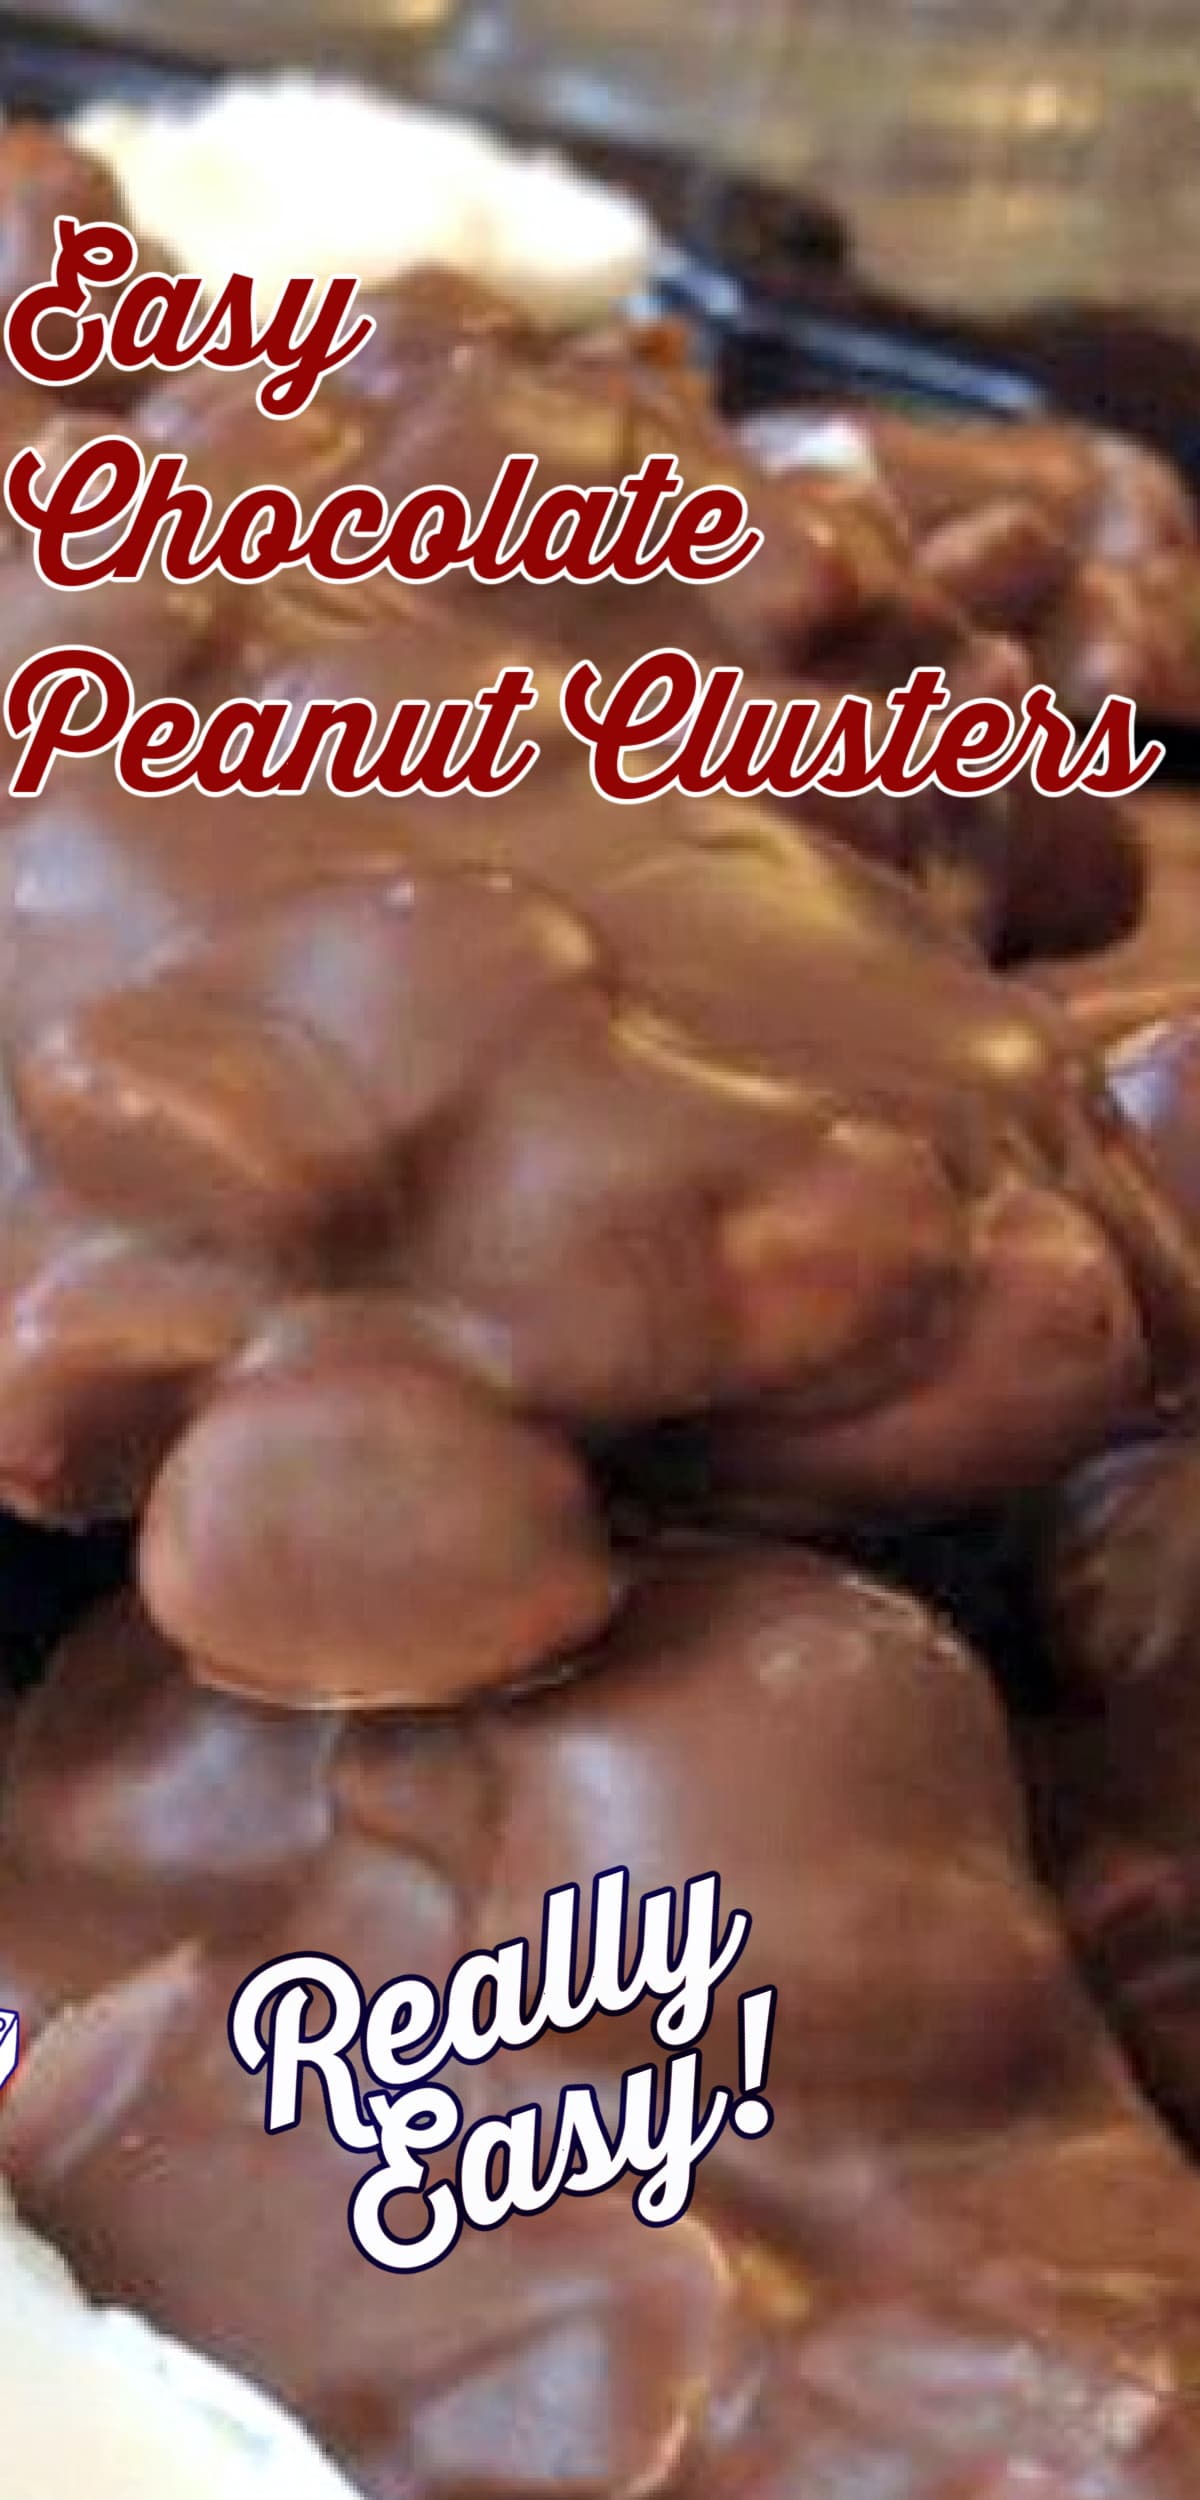 Easy Chocolate Peanut Clusters! These little chocolate bites are quick and easy to make. You can also add raisins, your favorite nuts, cranberries, whatever you like! You choose!